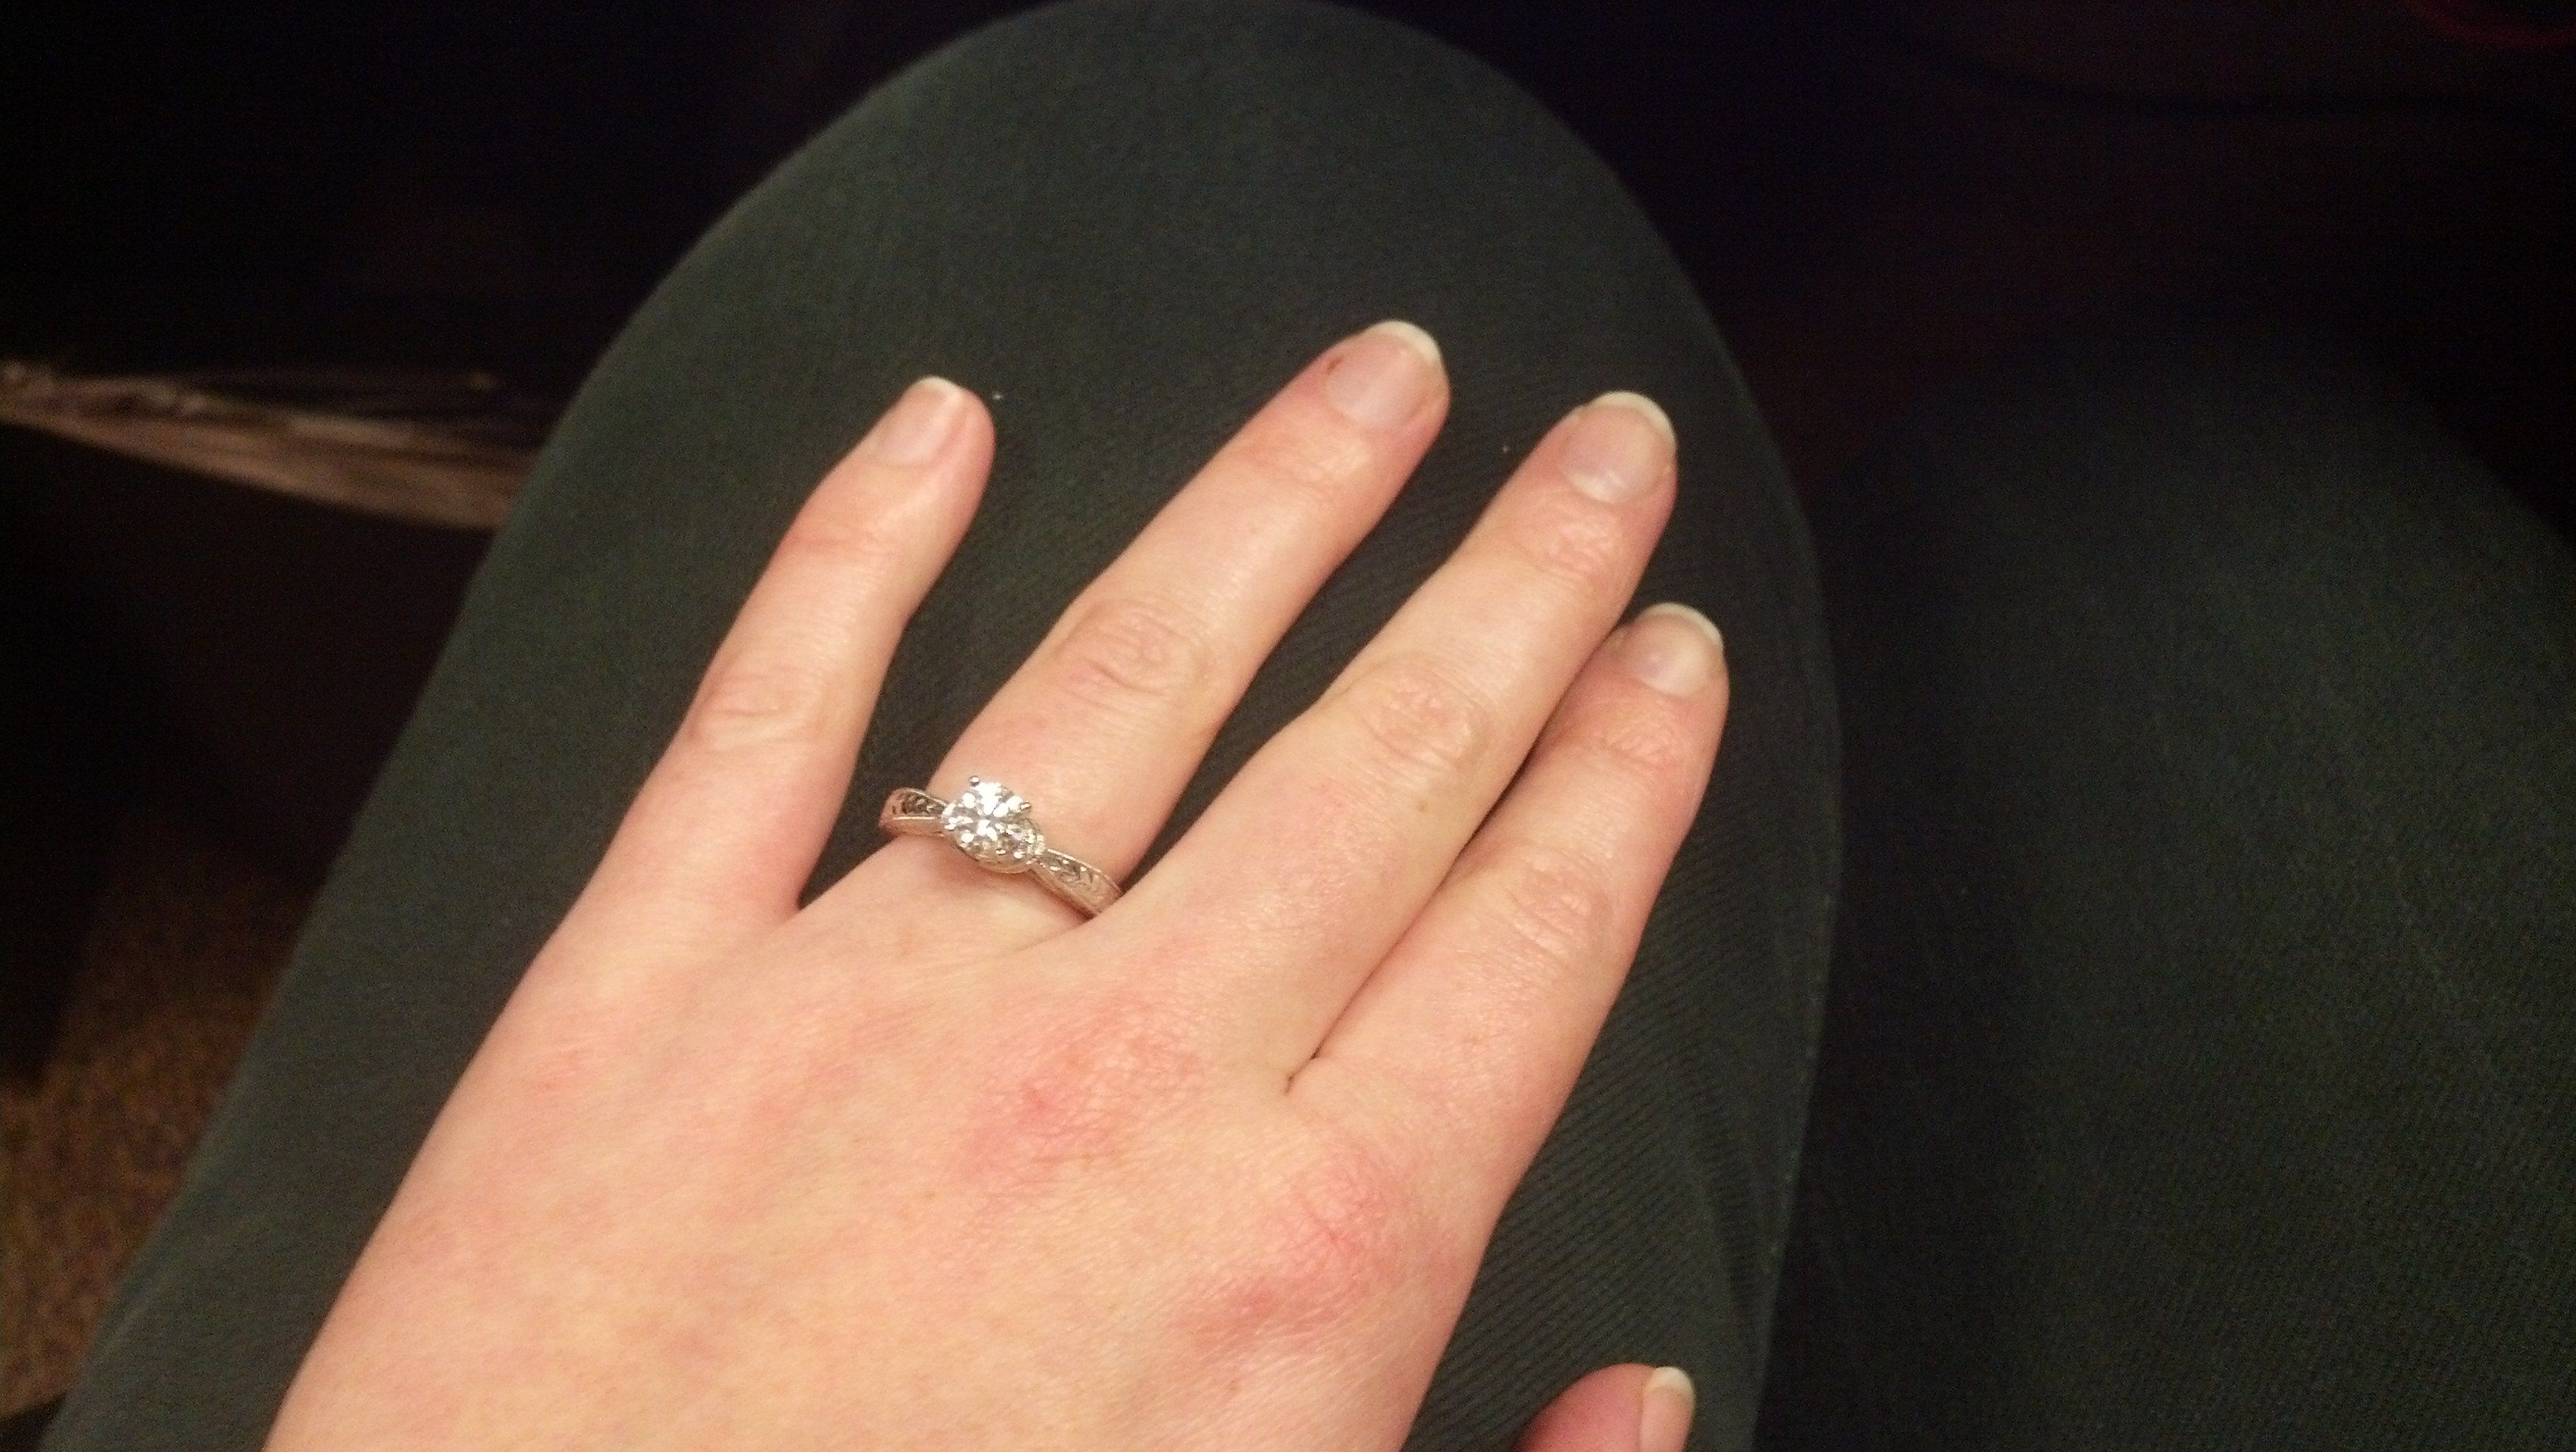 Carat Size For Sz 5 Ring Finger The Knot Community